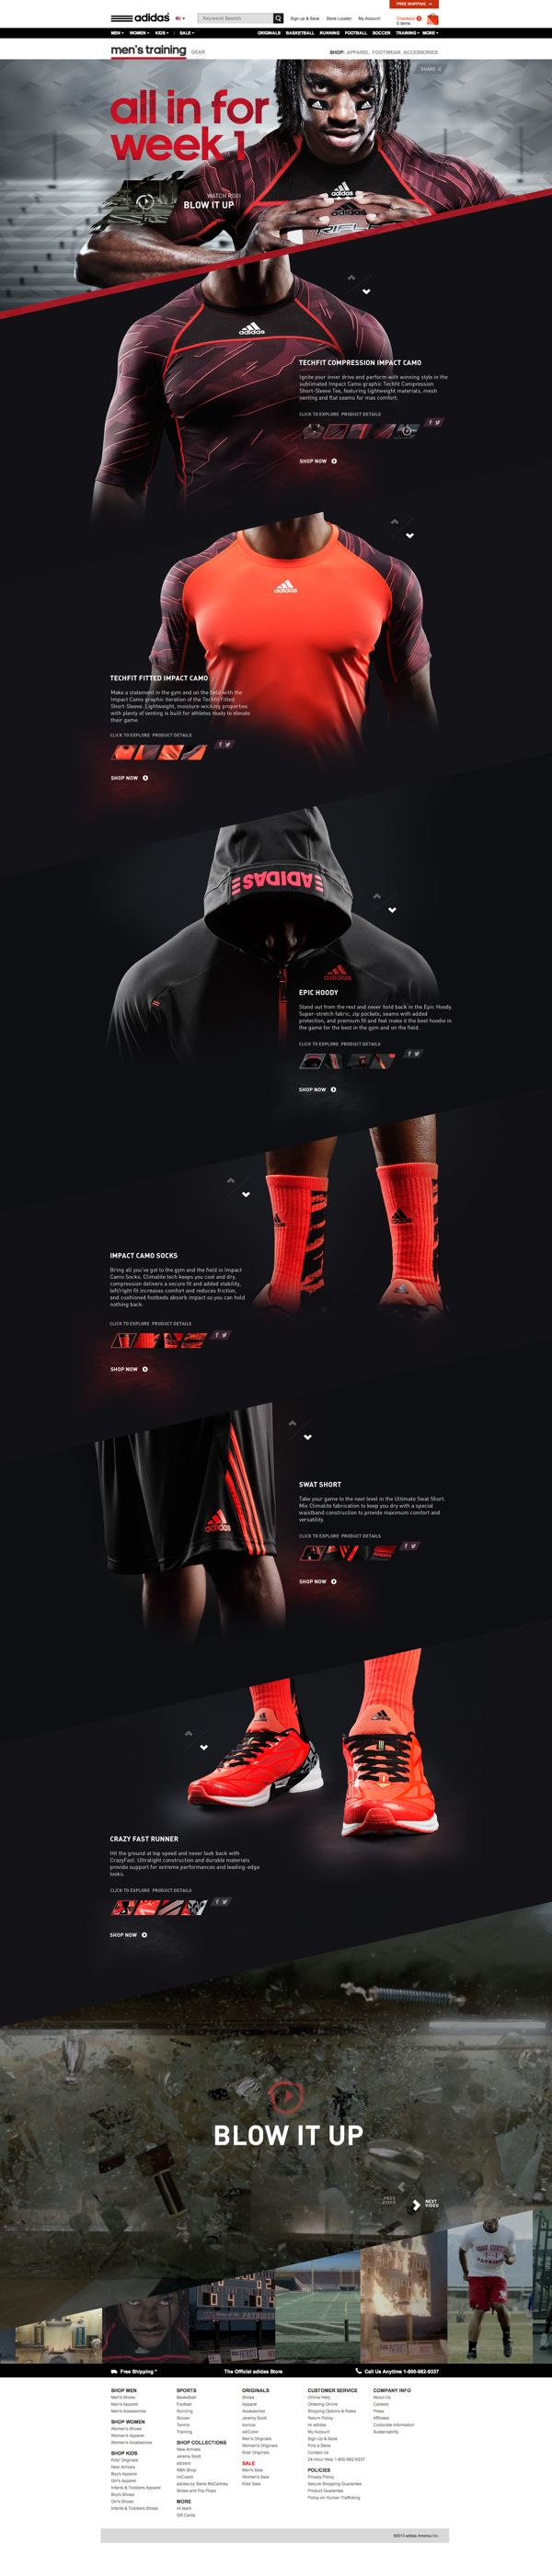 HTML5 experience showcasing the impact camo collection on adidas.com. Subtle parallax scrolling and interactions were developed across the site bringing the campaign to life.